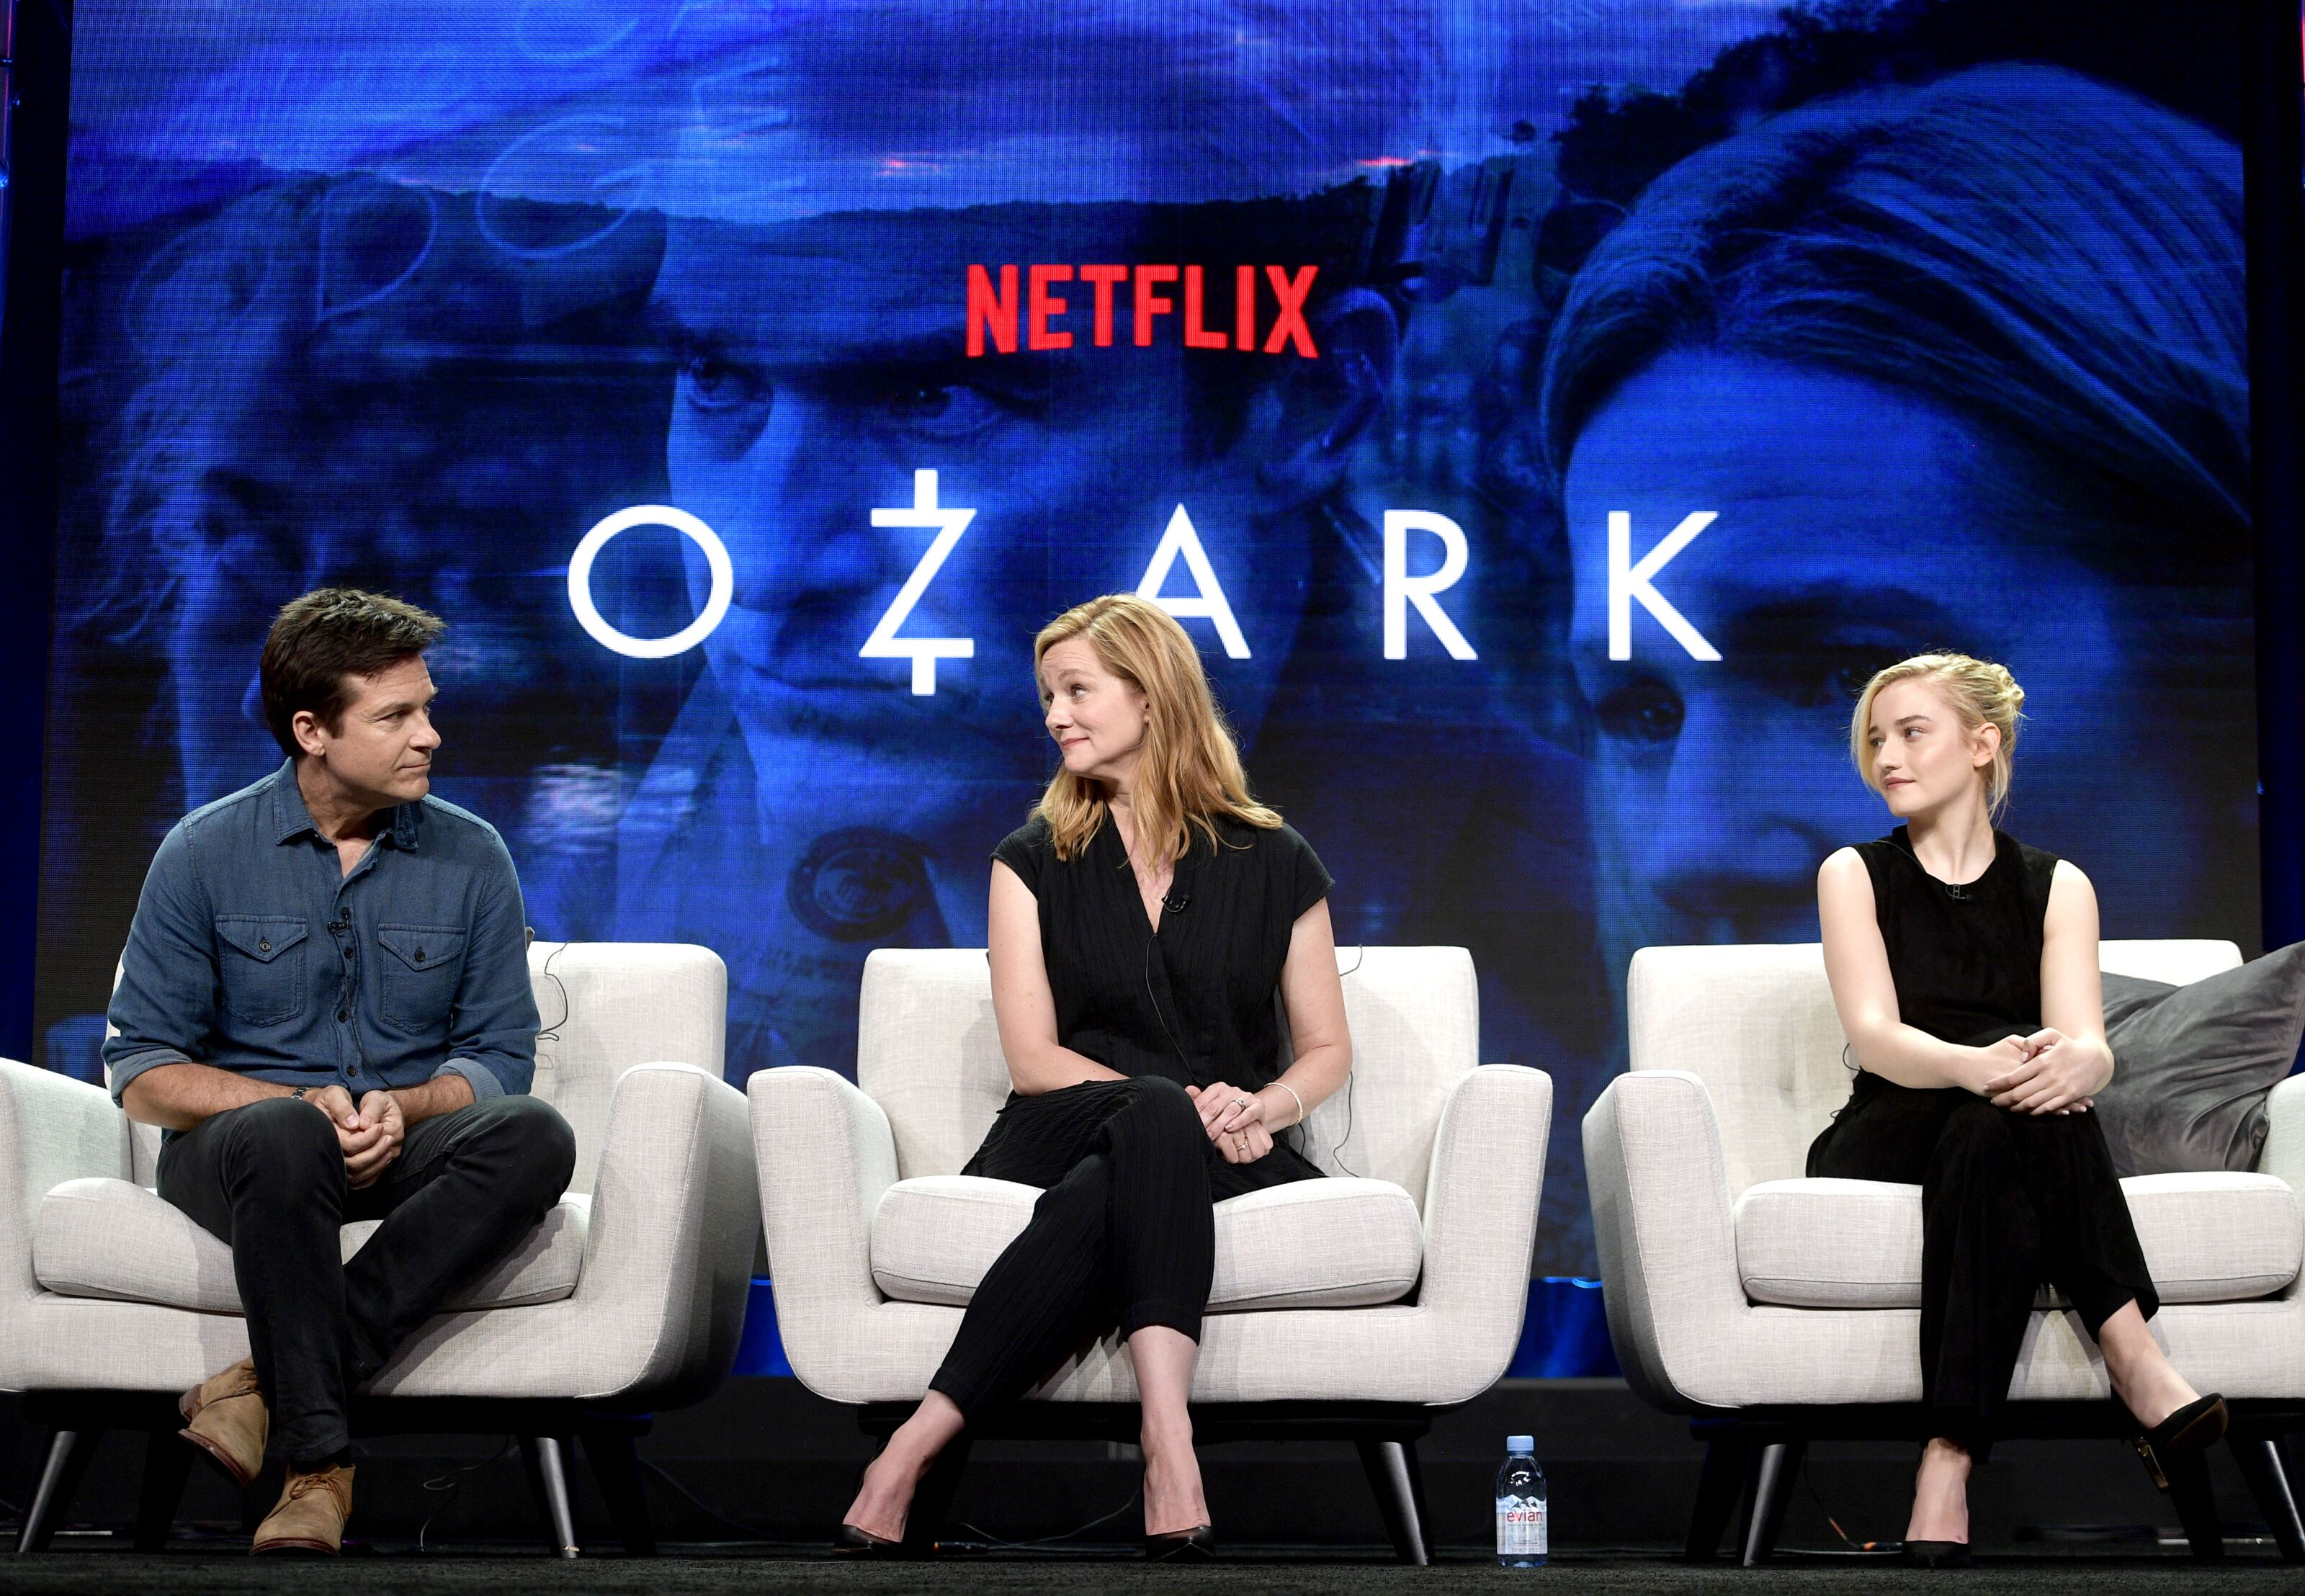 Ozark season 3 is coming and here's everything we know so far!